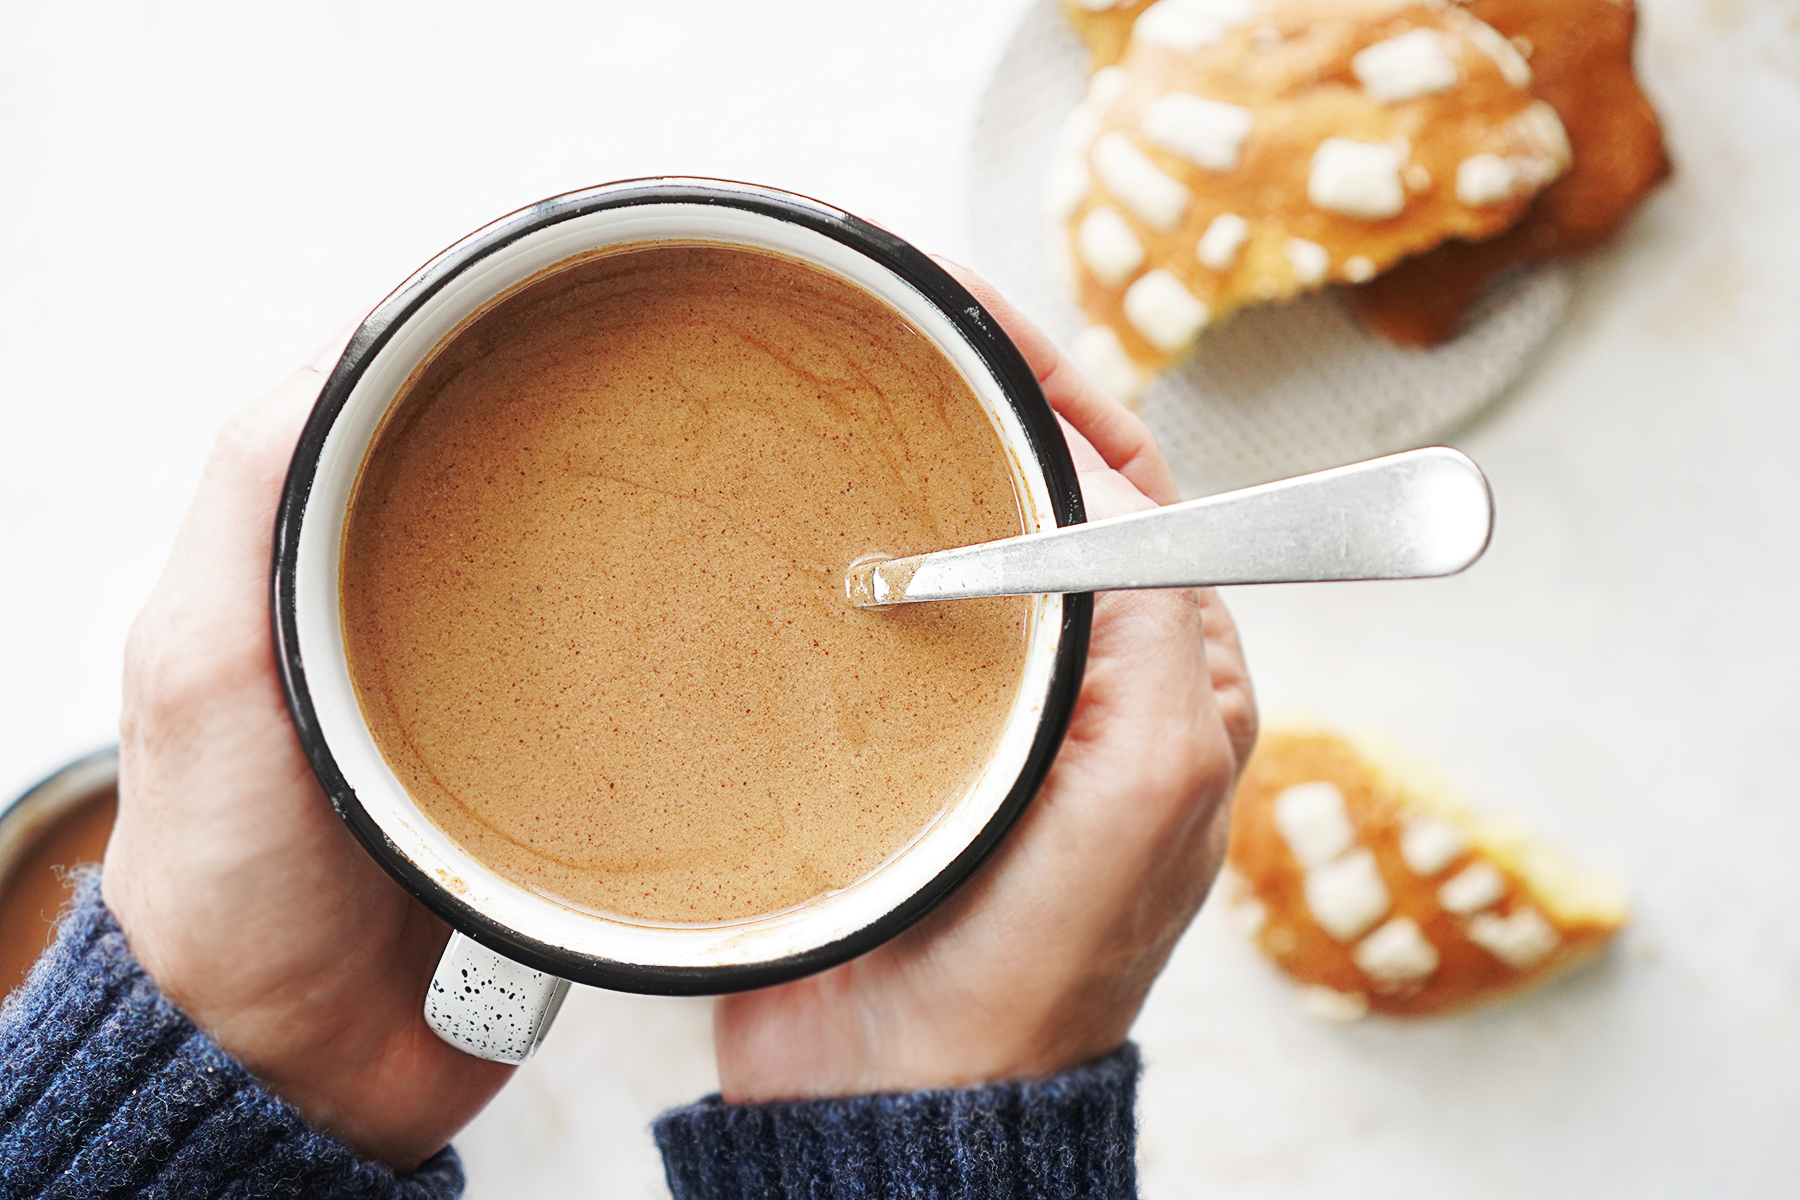 Two hands holding a mug with Mexican chocolate and spoon in the cup